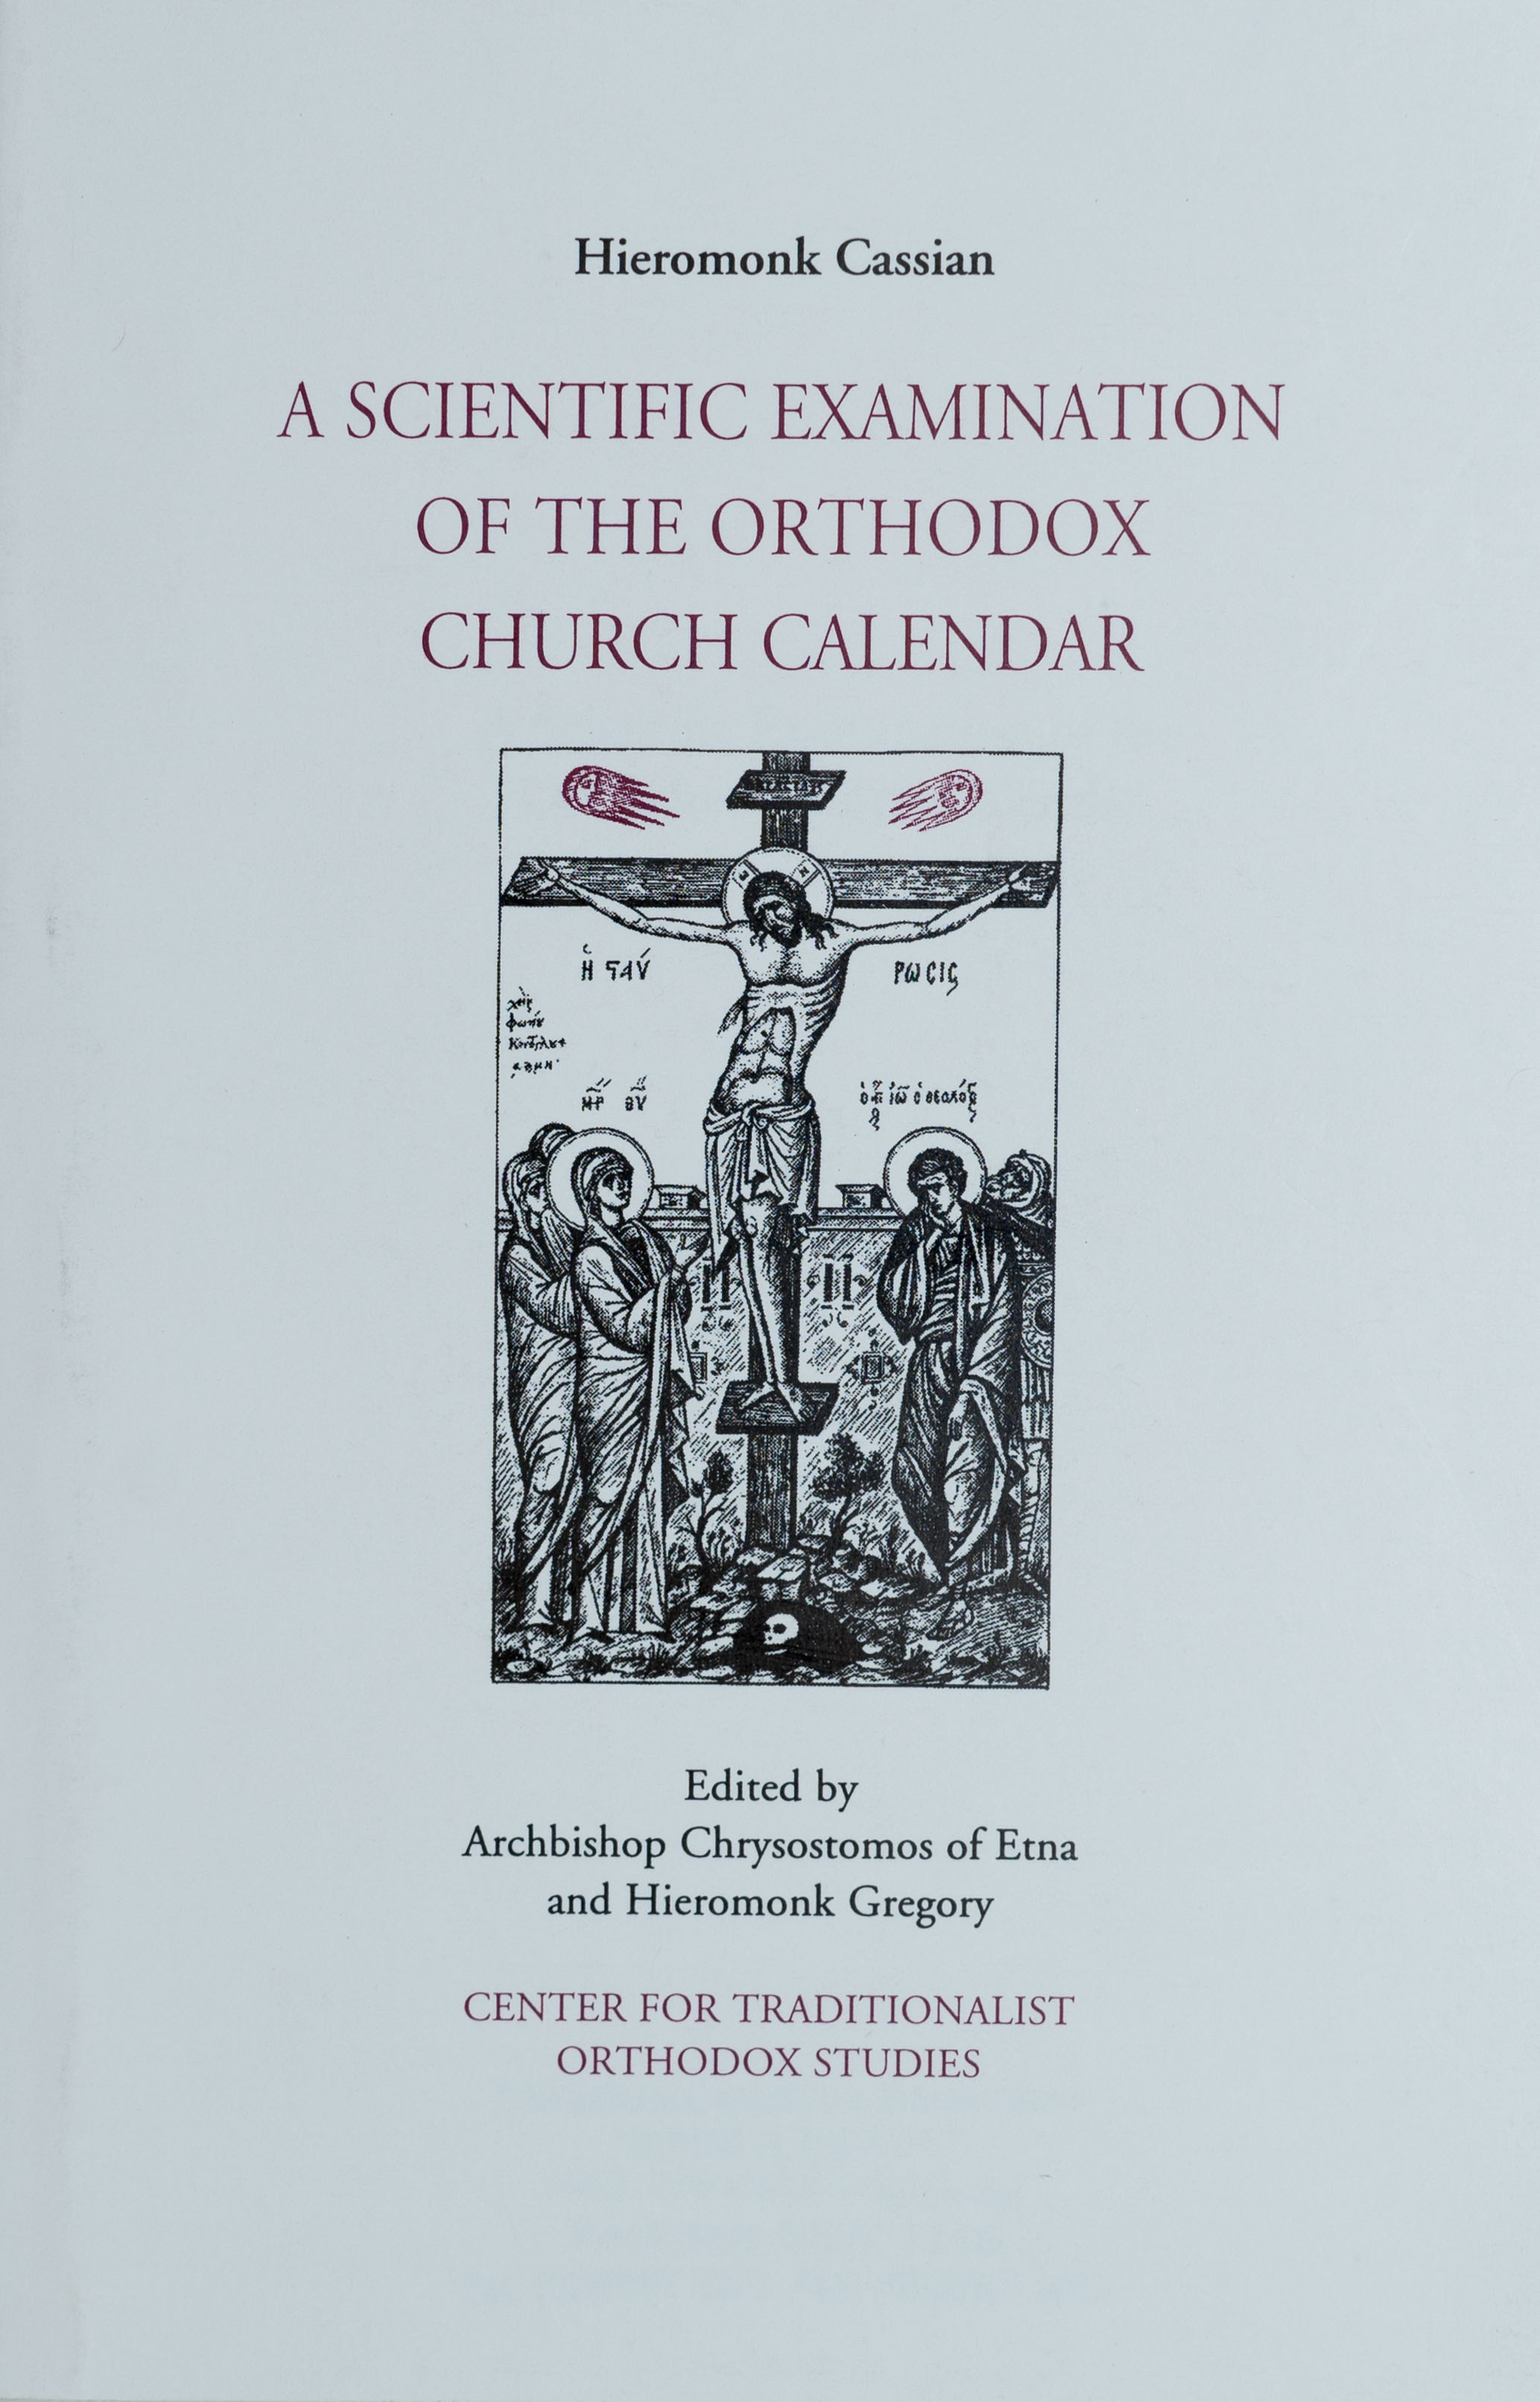 A Scientific Examination of the Orthodox Church Calendar